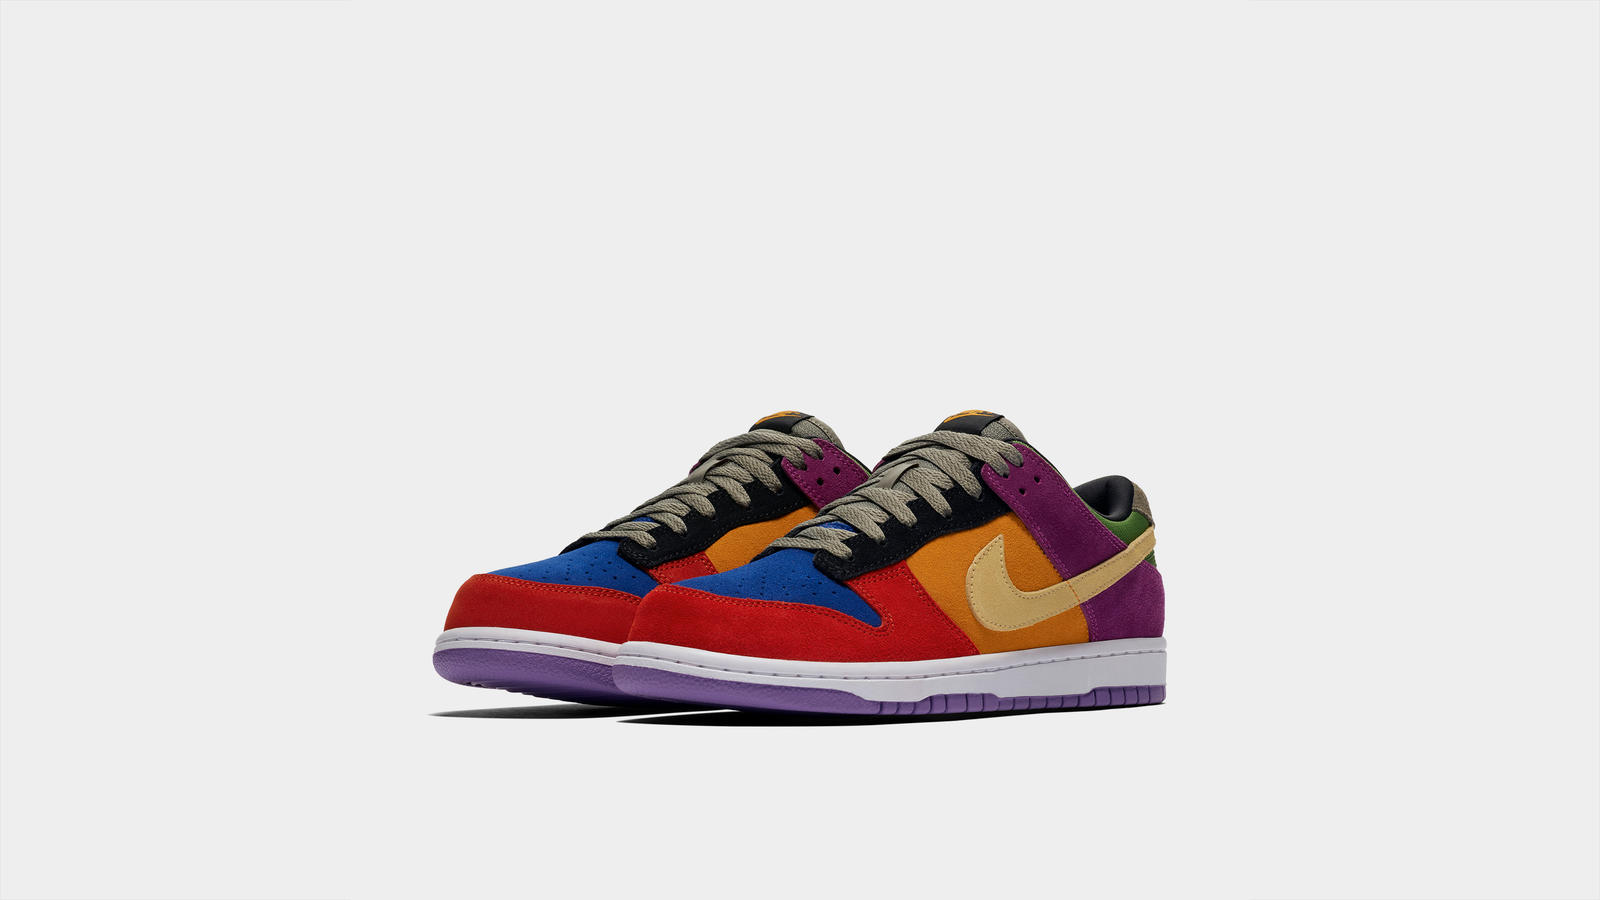 Nike Dunk Viotech 2019 Official Images and Release Date 5